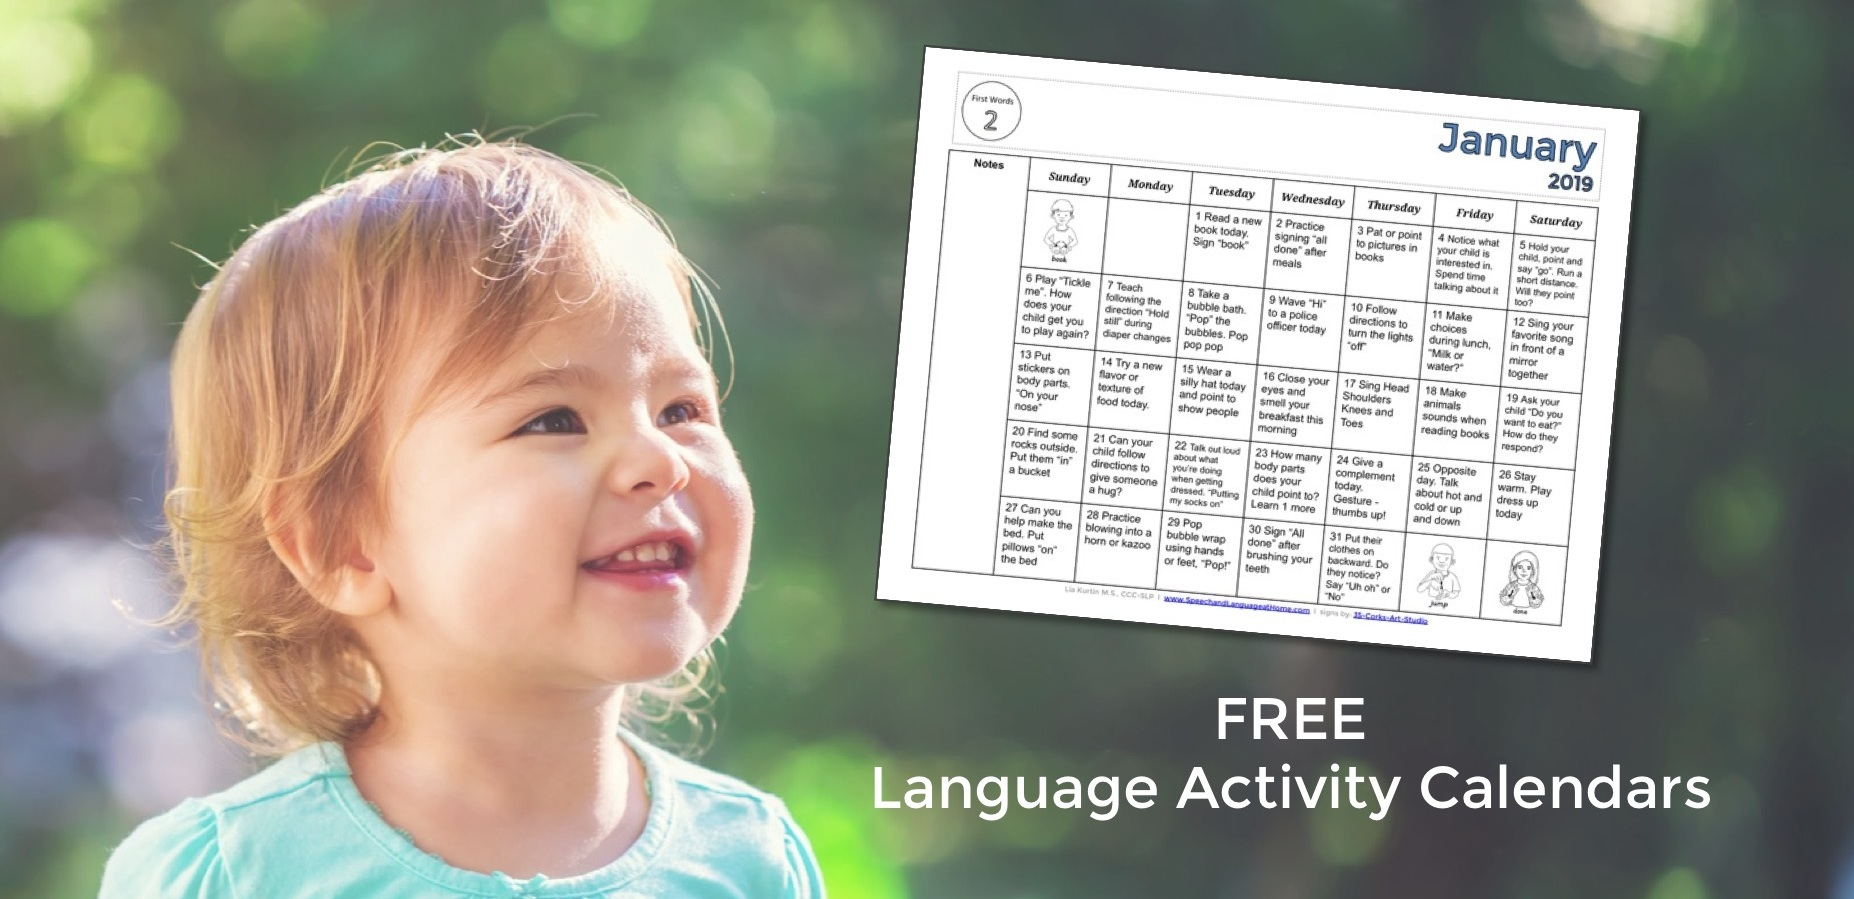 Free+Language+Activity+Calendars